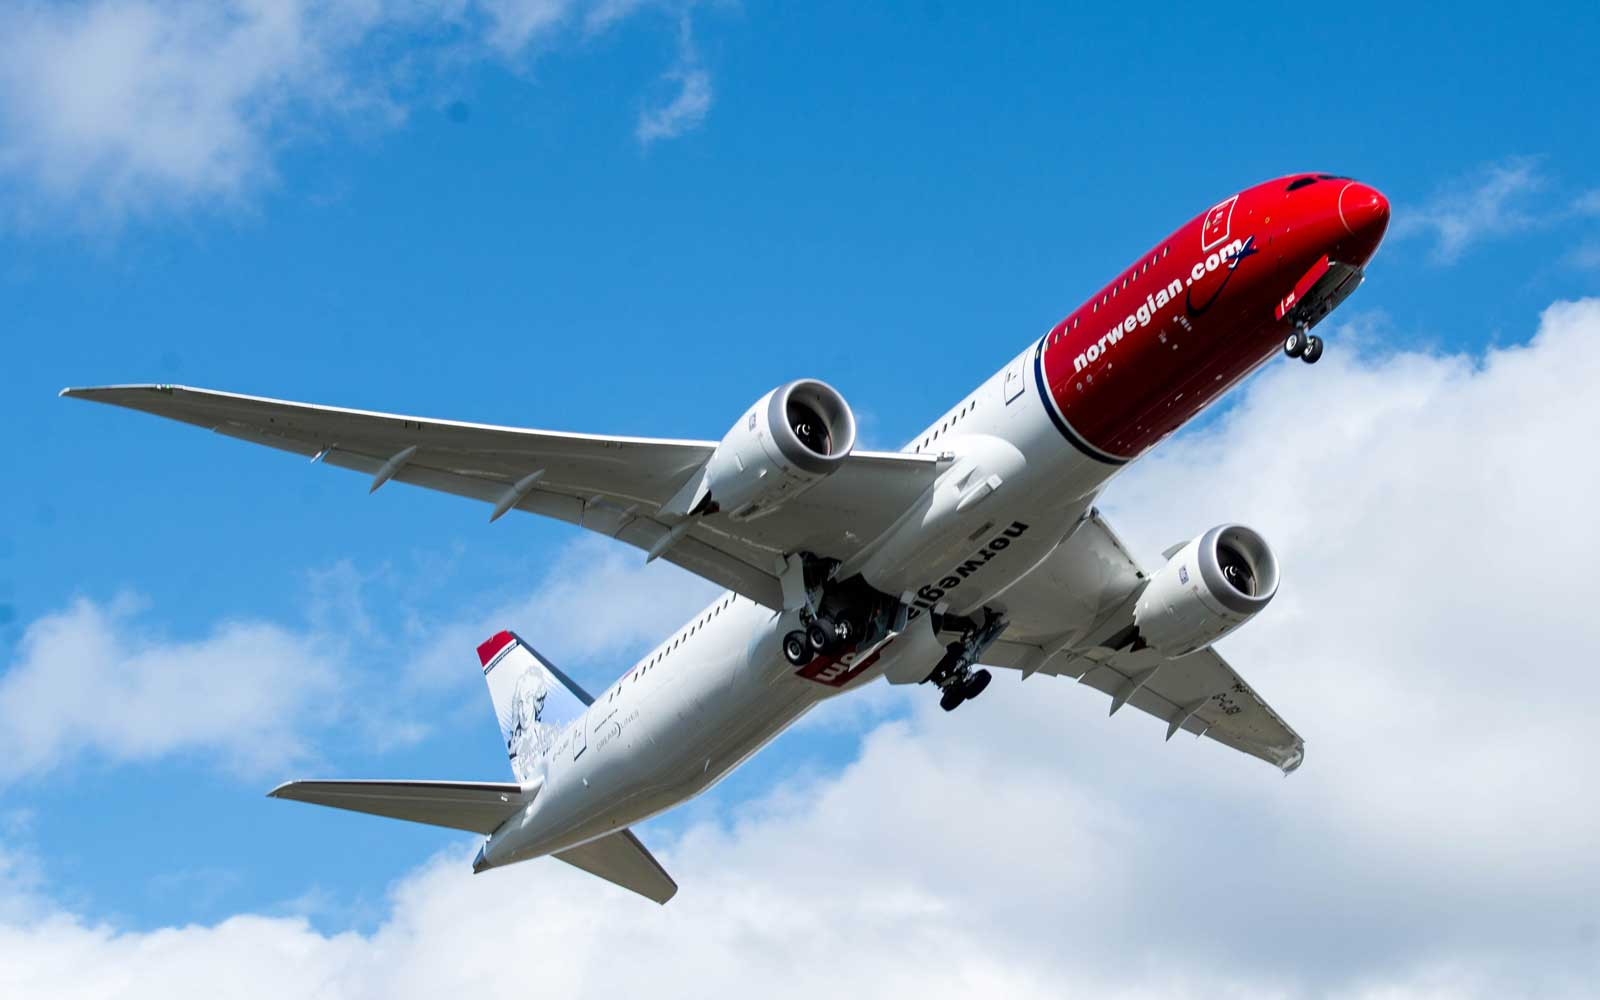 Your Cheap Norwegian Ticket Could Now Come With Free Wi-Fi